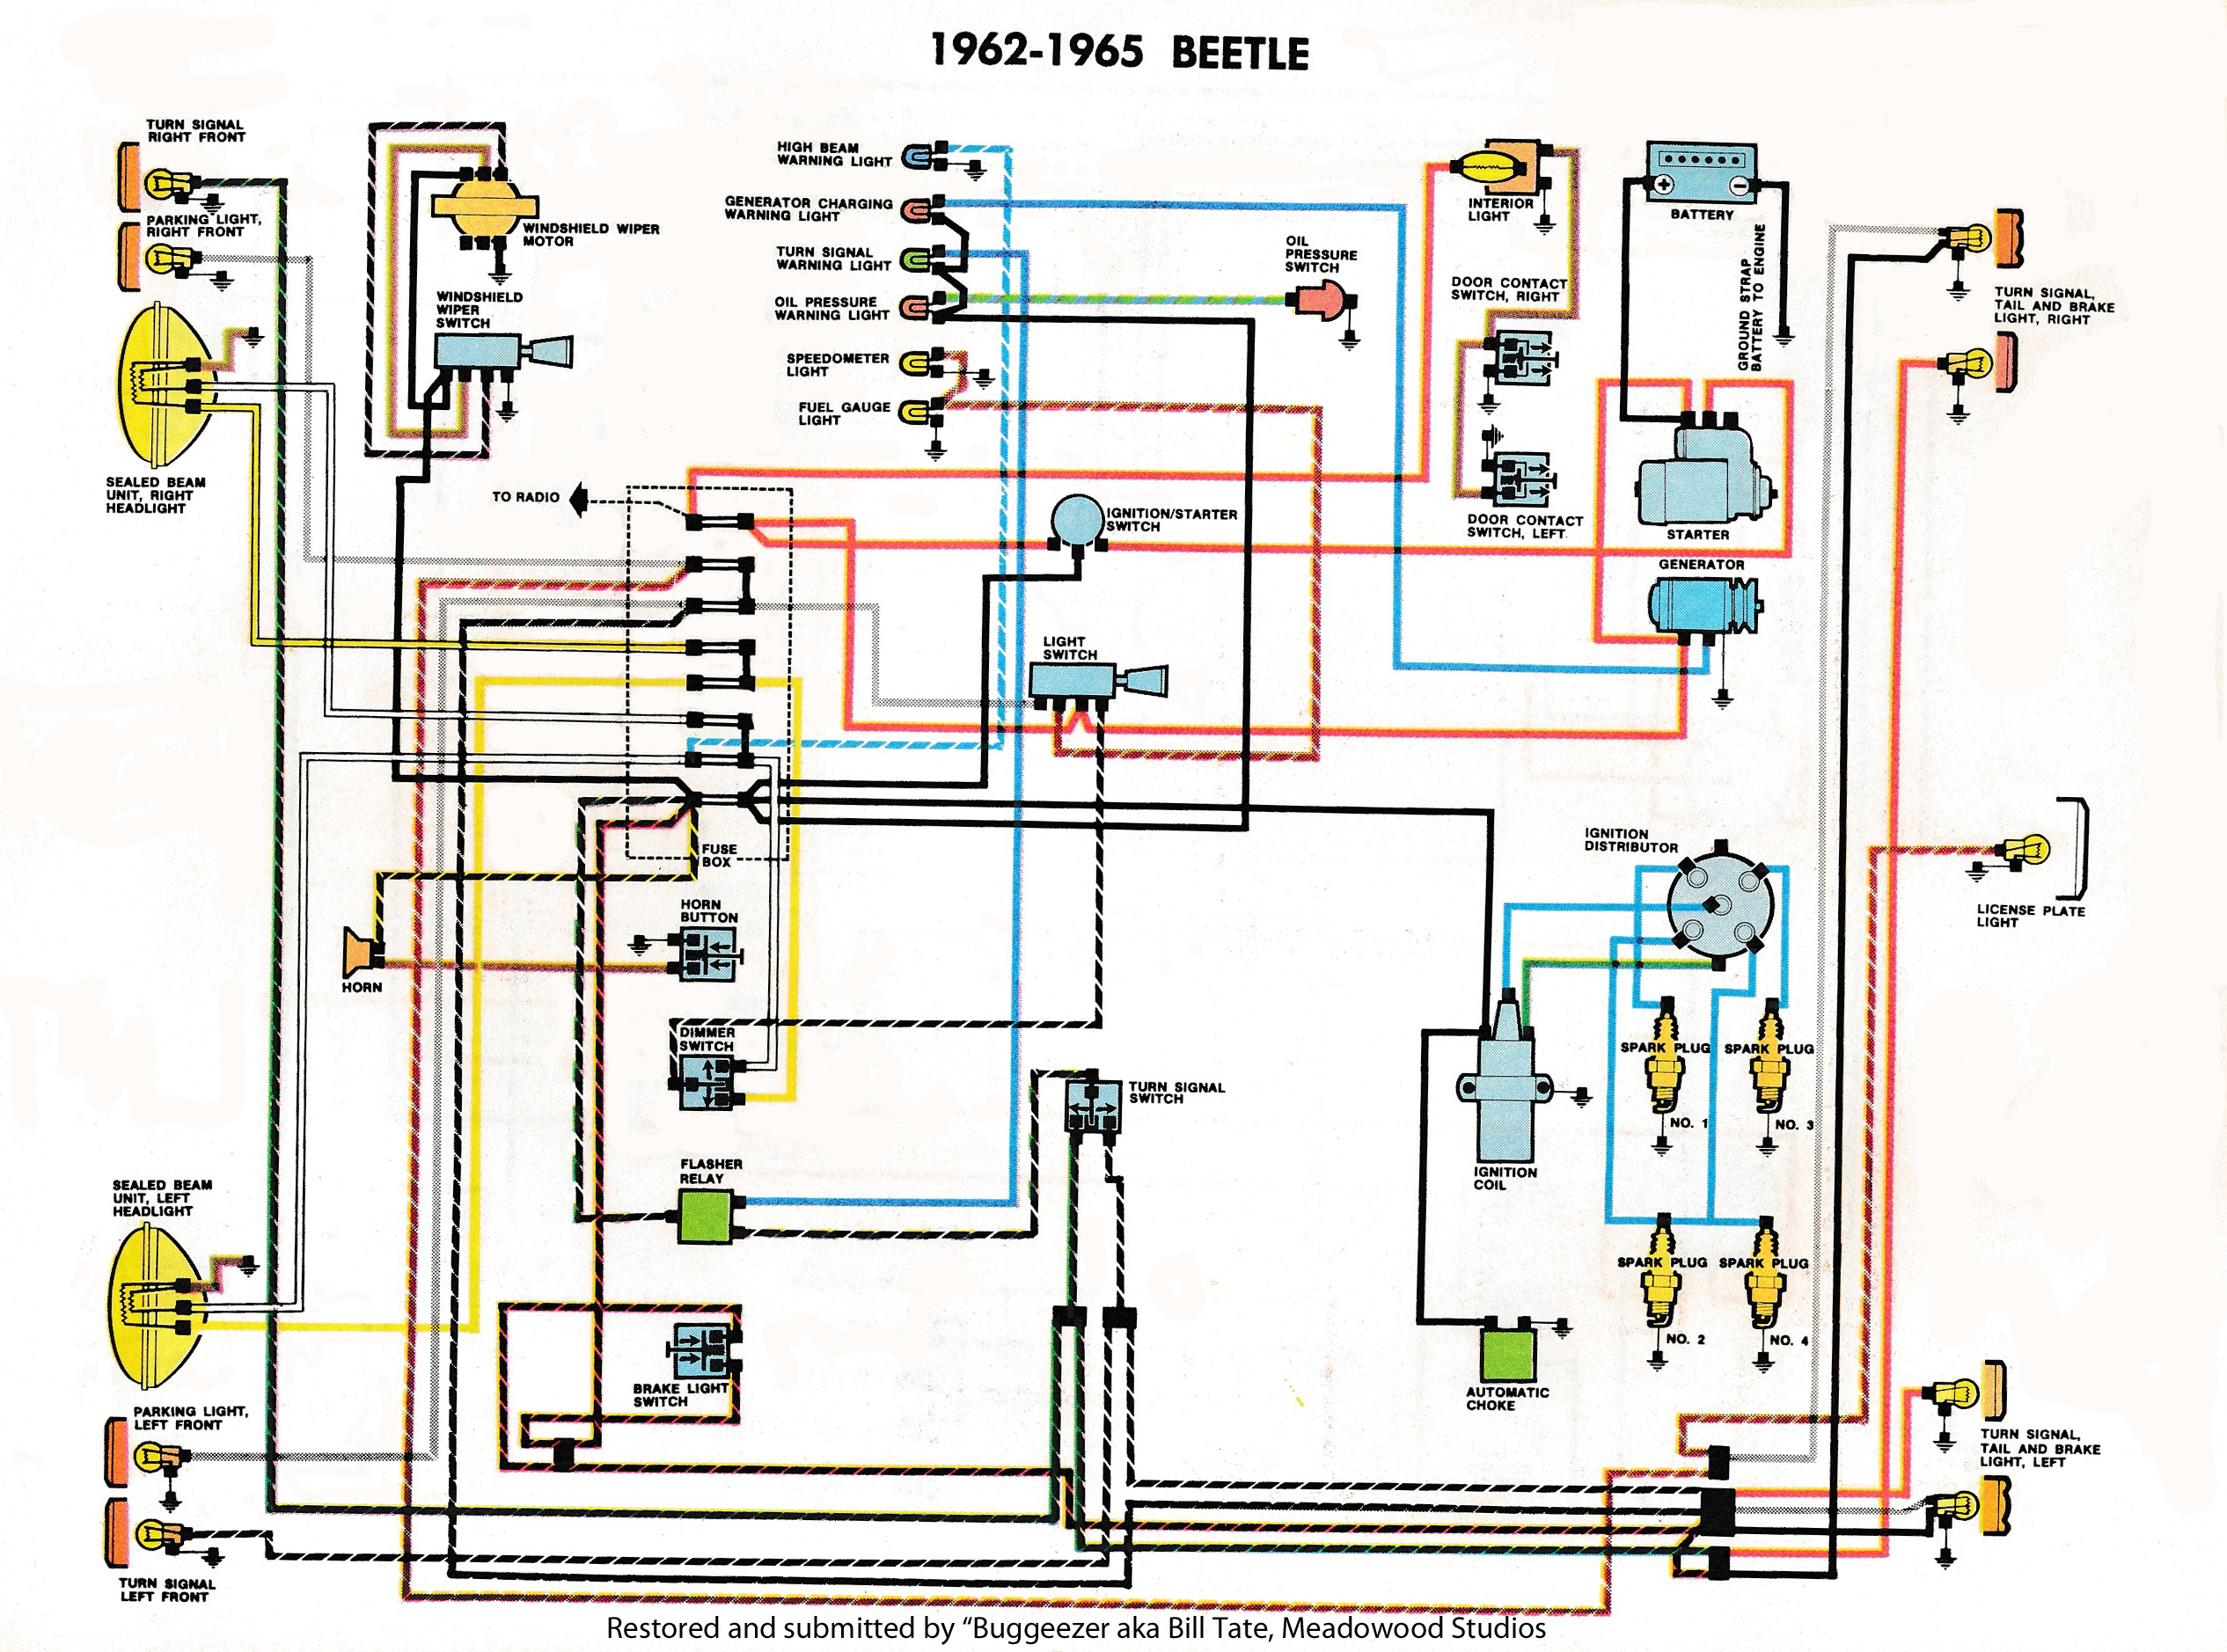 73 Camaro Engine Bay Wiring Diagram Smart Diagrams 1968 Fuse Box Thesamba Com Type 1 Rh Online 76